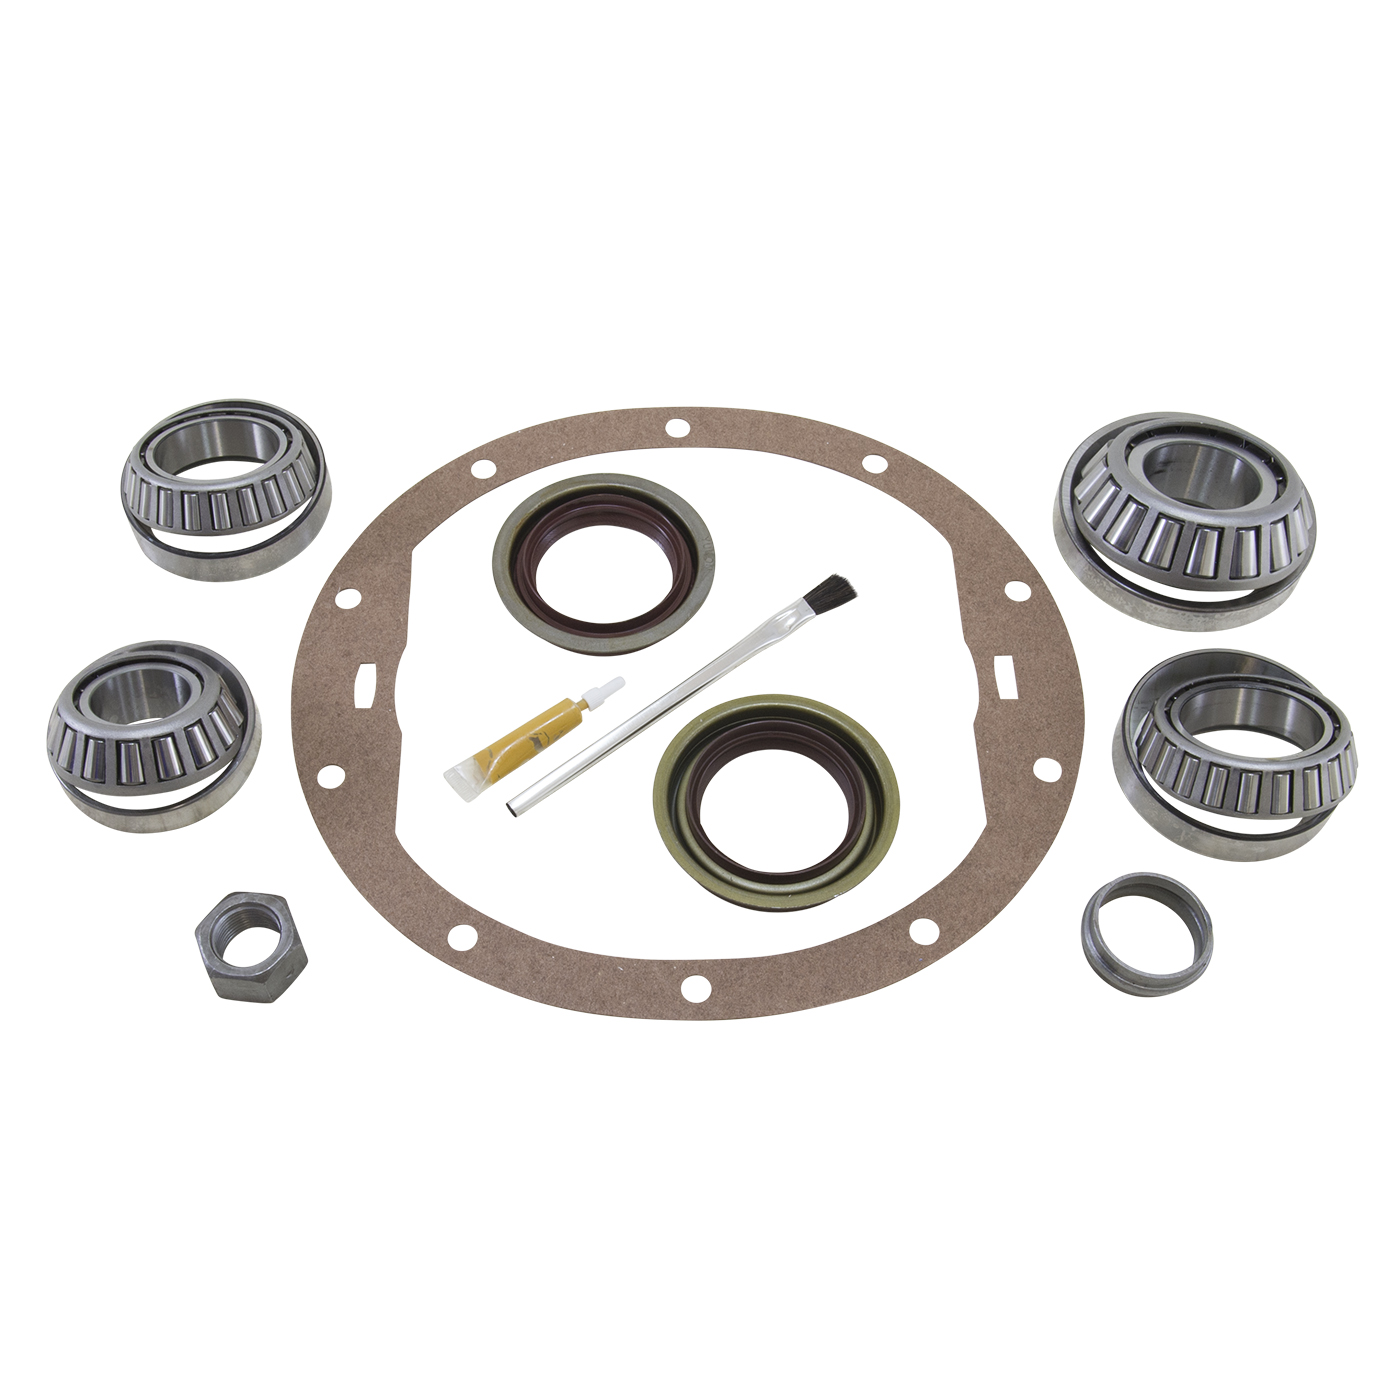 BK GM9.5-B - Yukon Bearing install kit for '98-'13r GM 9.5